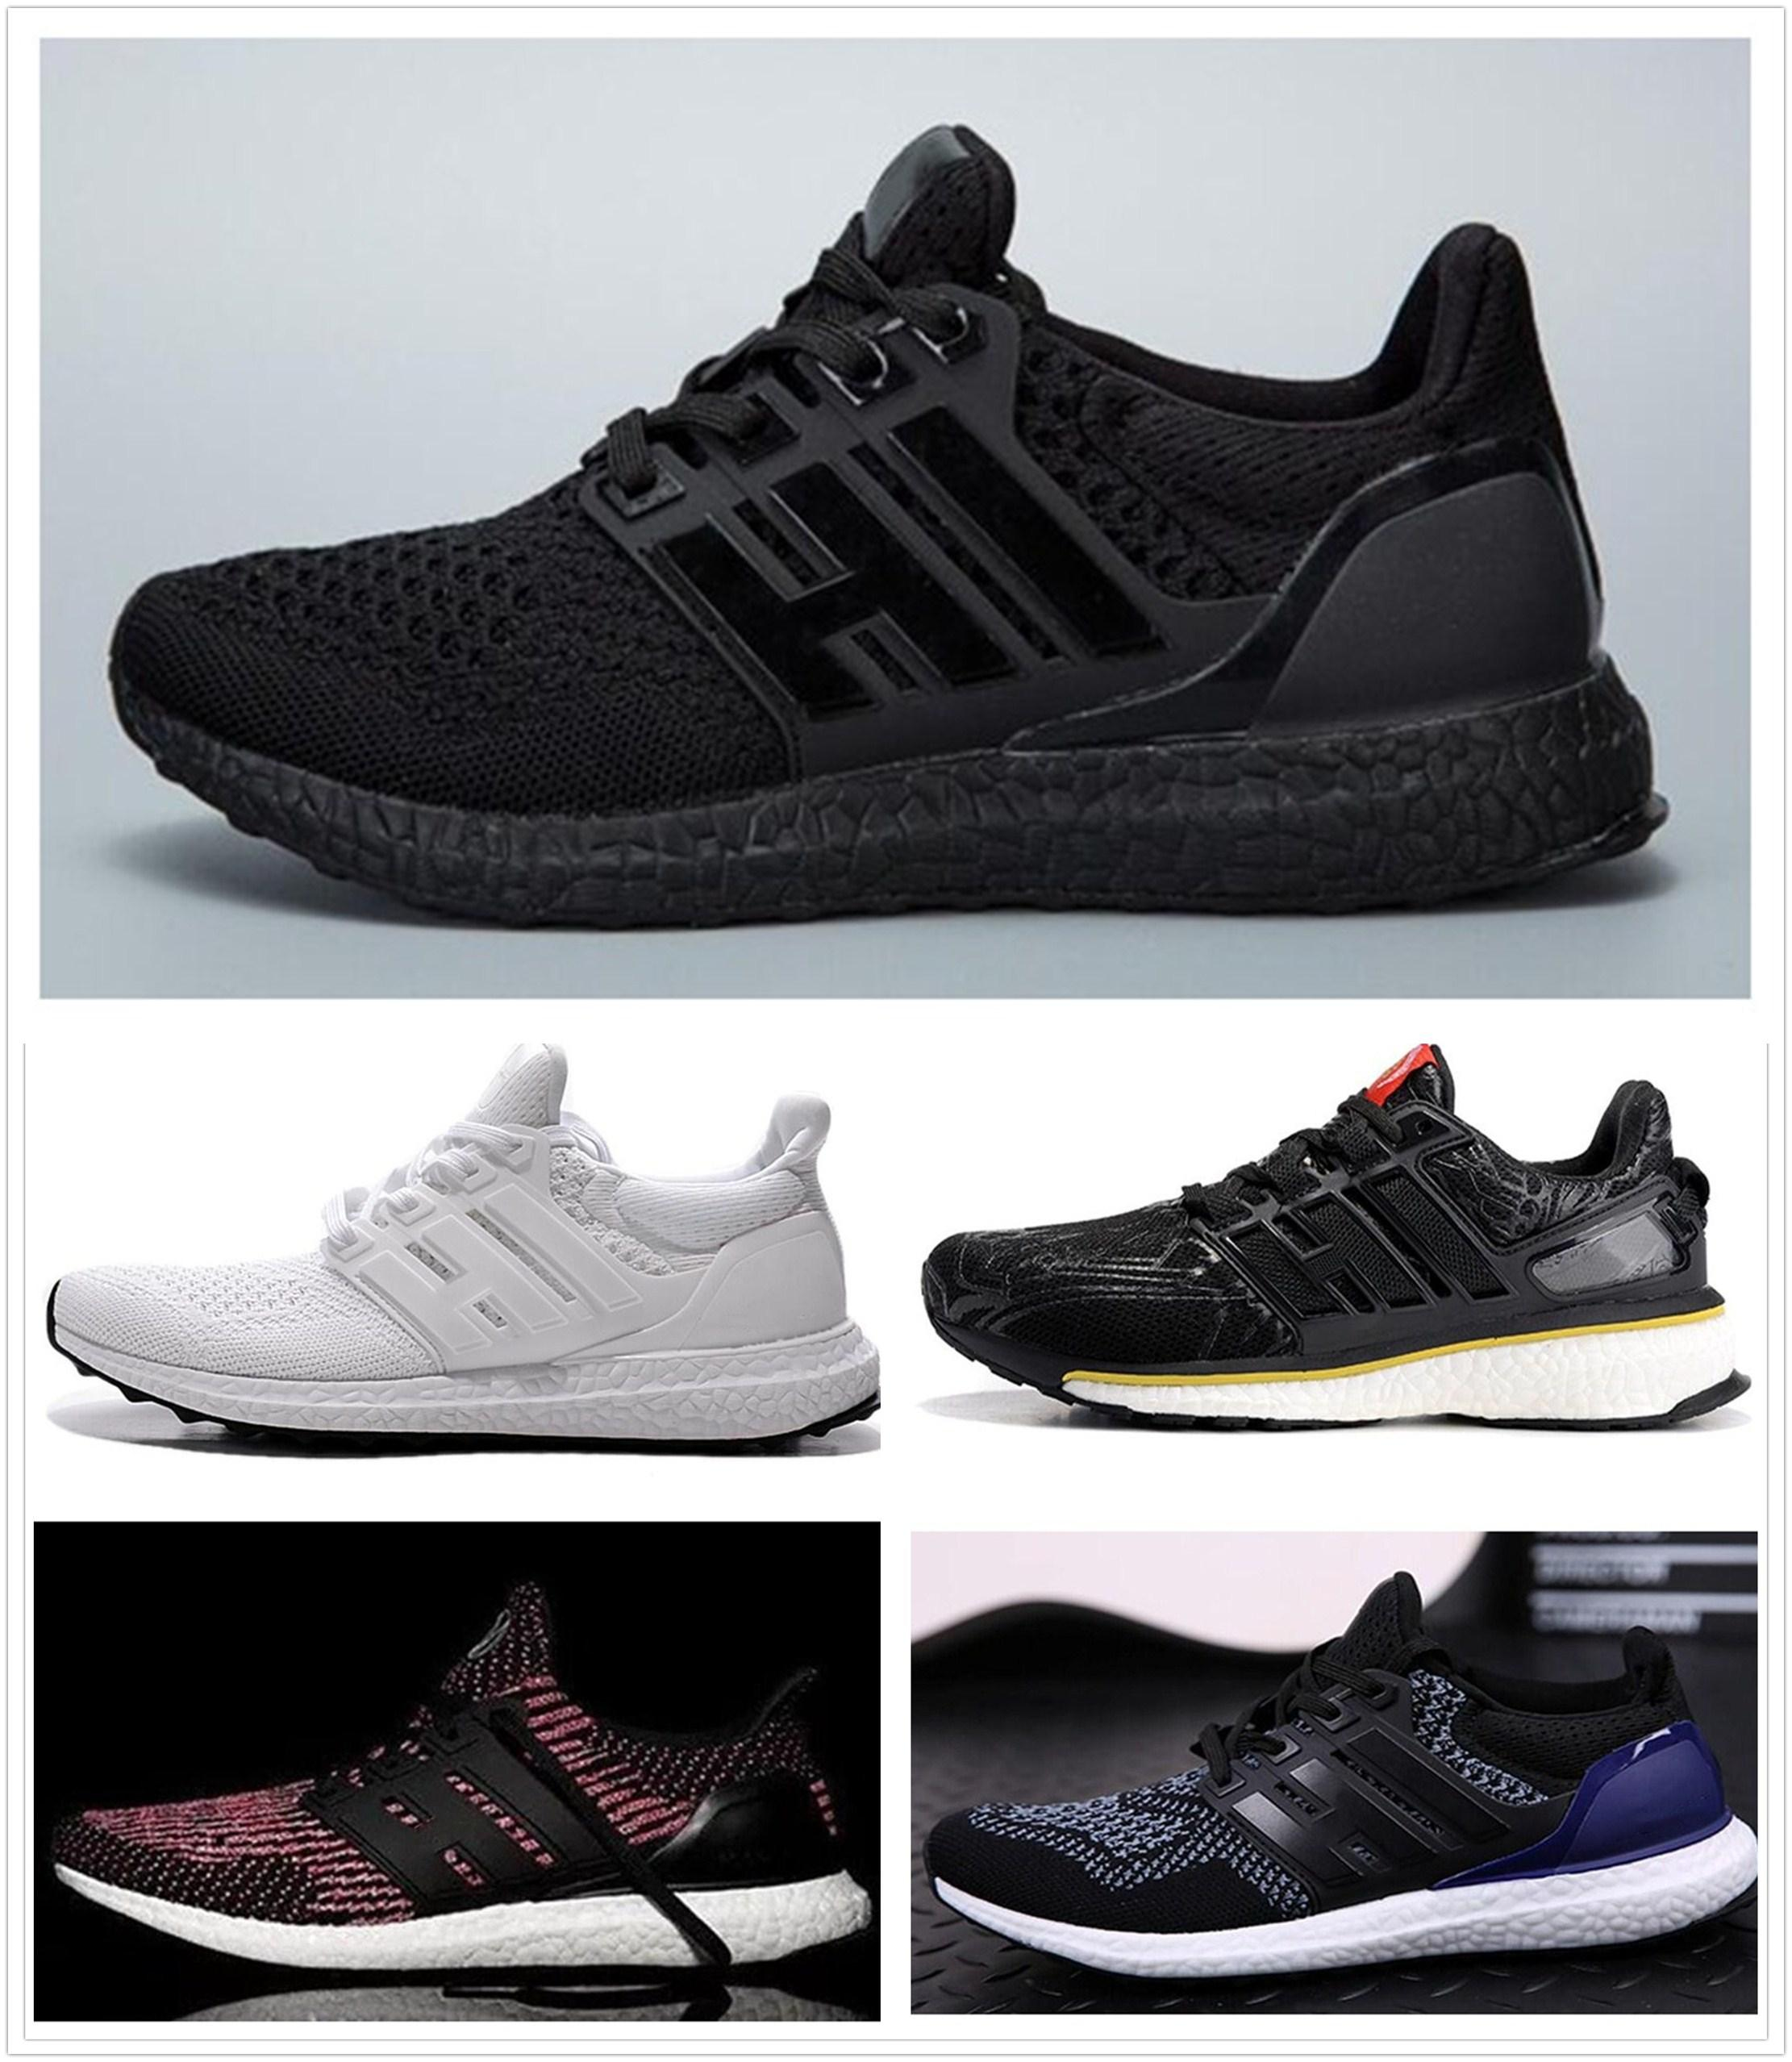 bfa21d44155 2017 Ultra Boost ATR Mid Trace Khaki CG3001 Running Shoes Real Boost  Endiess Energy Sneakers For Mens Oreo MID Boots Ultraboos Girls Athletic  Shoes Junior ...